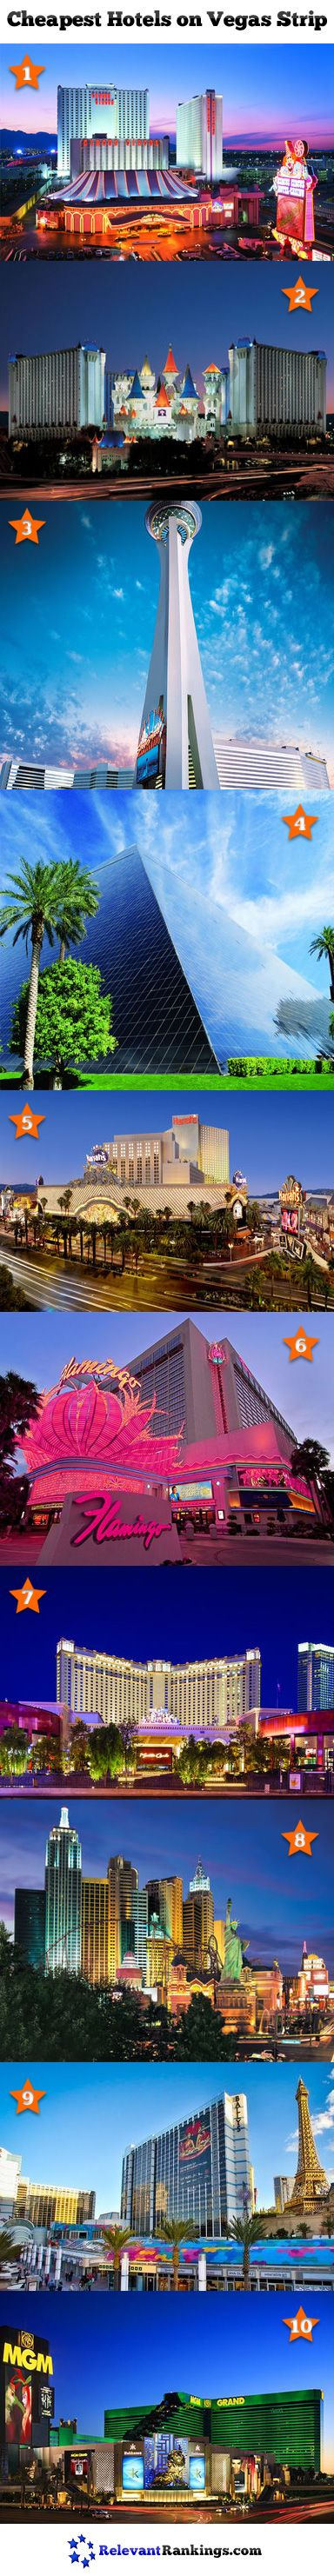 The cheapest hotels on the Las Vegas Strip. Ranked from lowest to highest by RelevantRankings.com.